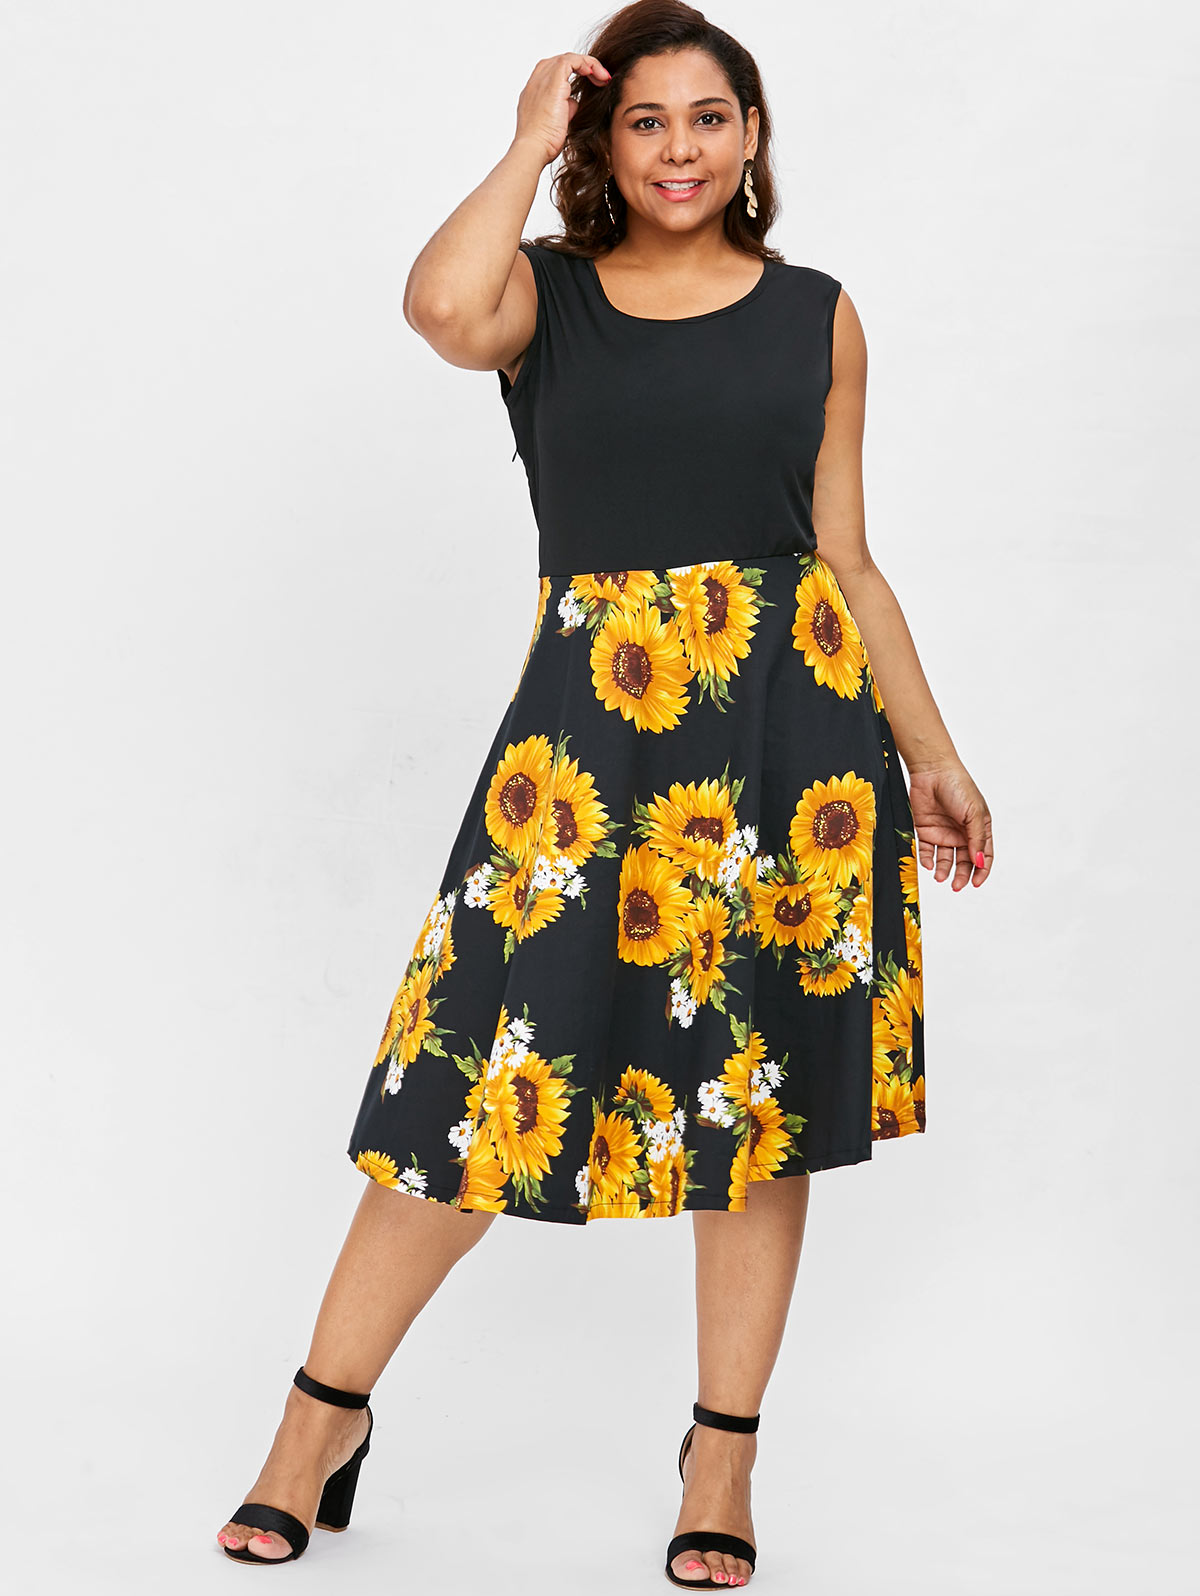 cedd6117735 The beautiful sunflowers print on the skirt for an eye-catching. Matching  the strappy sandals have fun in the summer holiday.